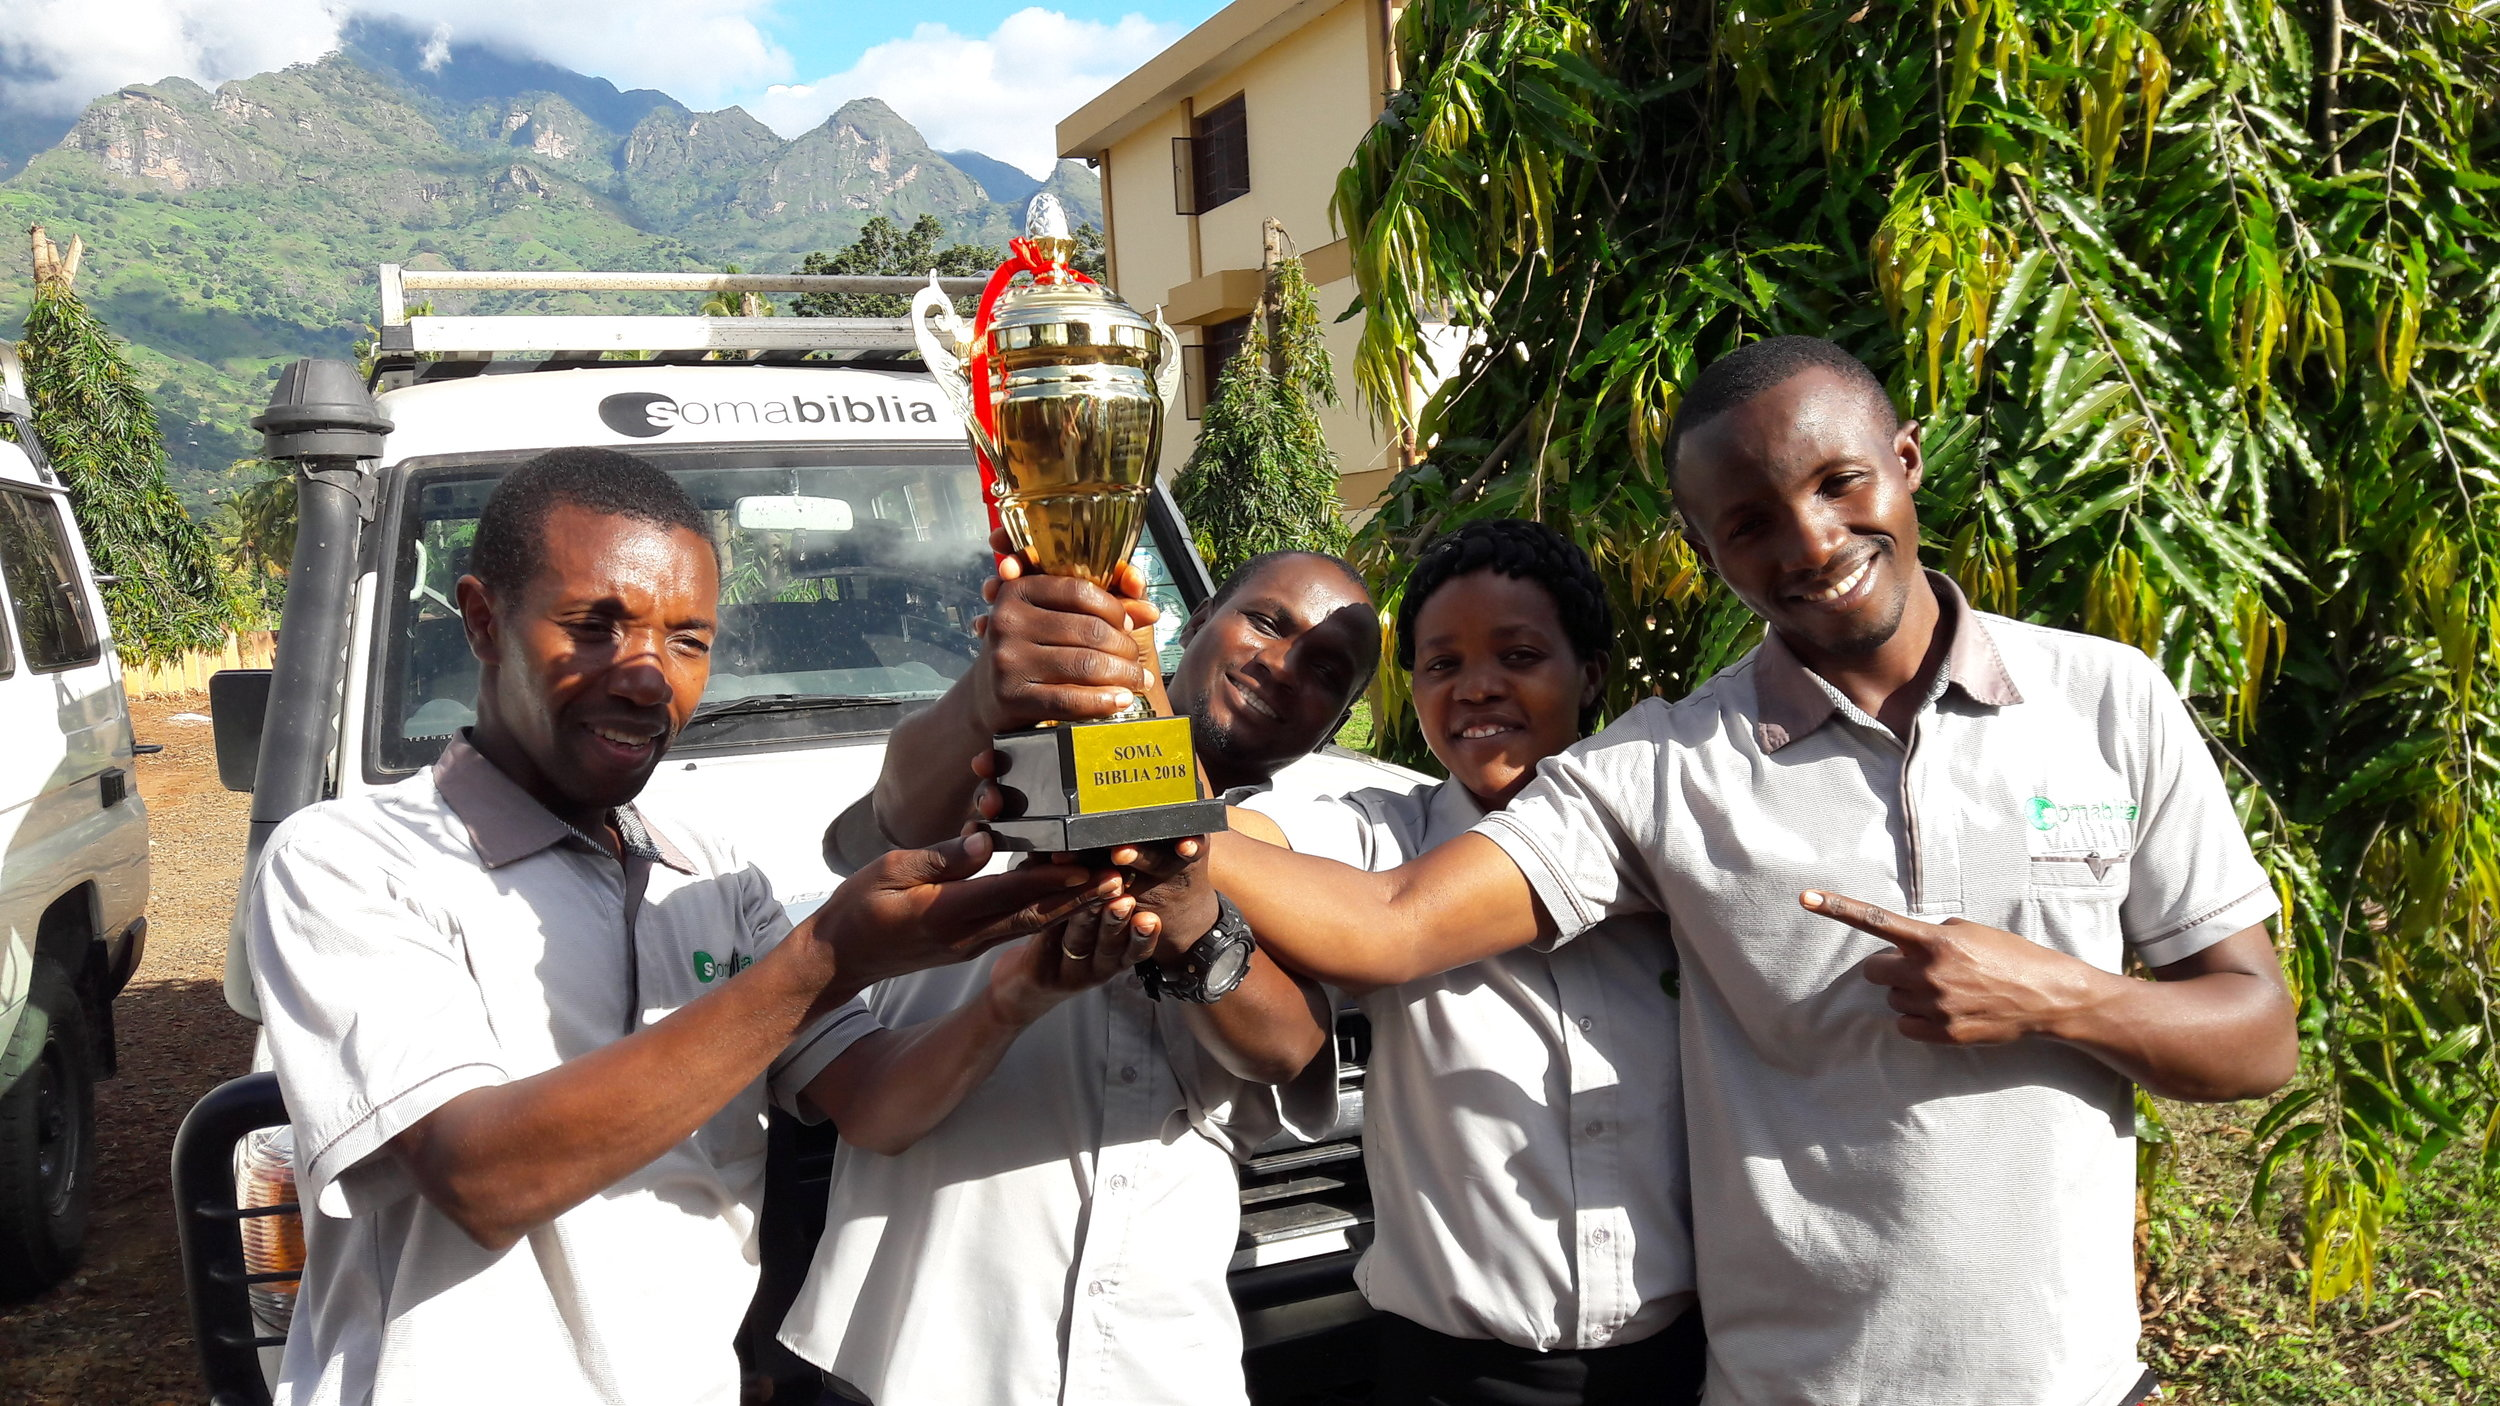 The workers at Soma Biblia Mwanza took the victory and the Soma Biblia cup home!